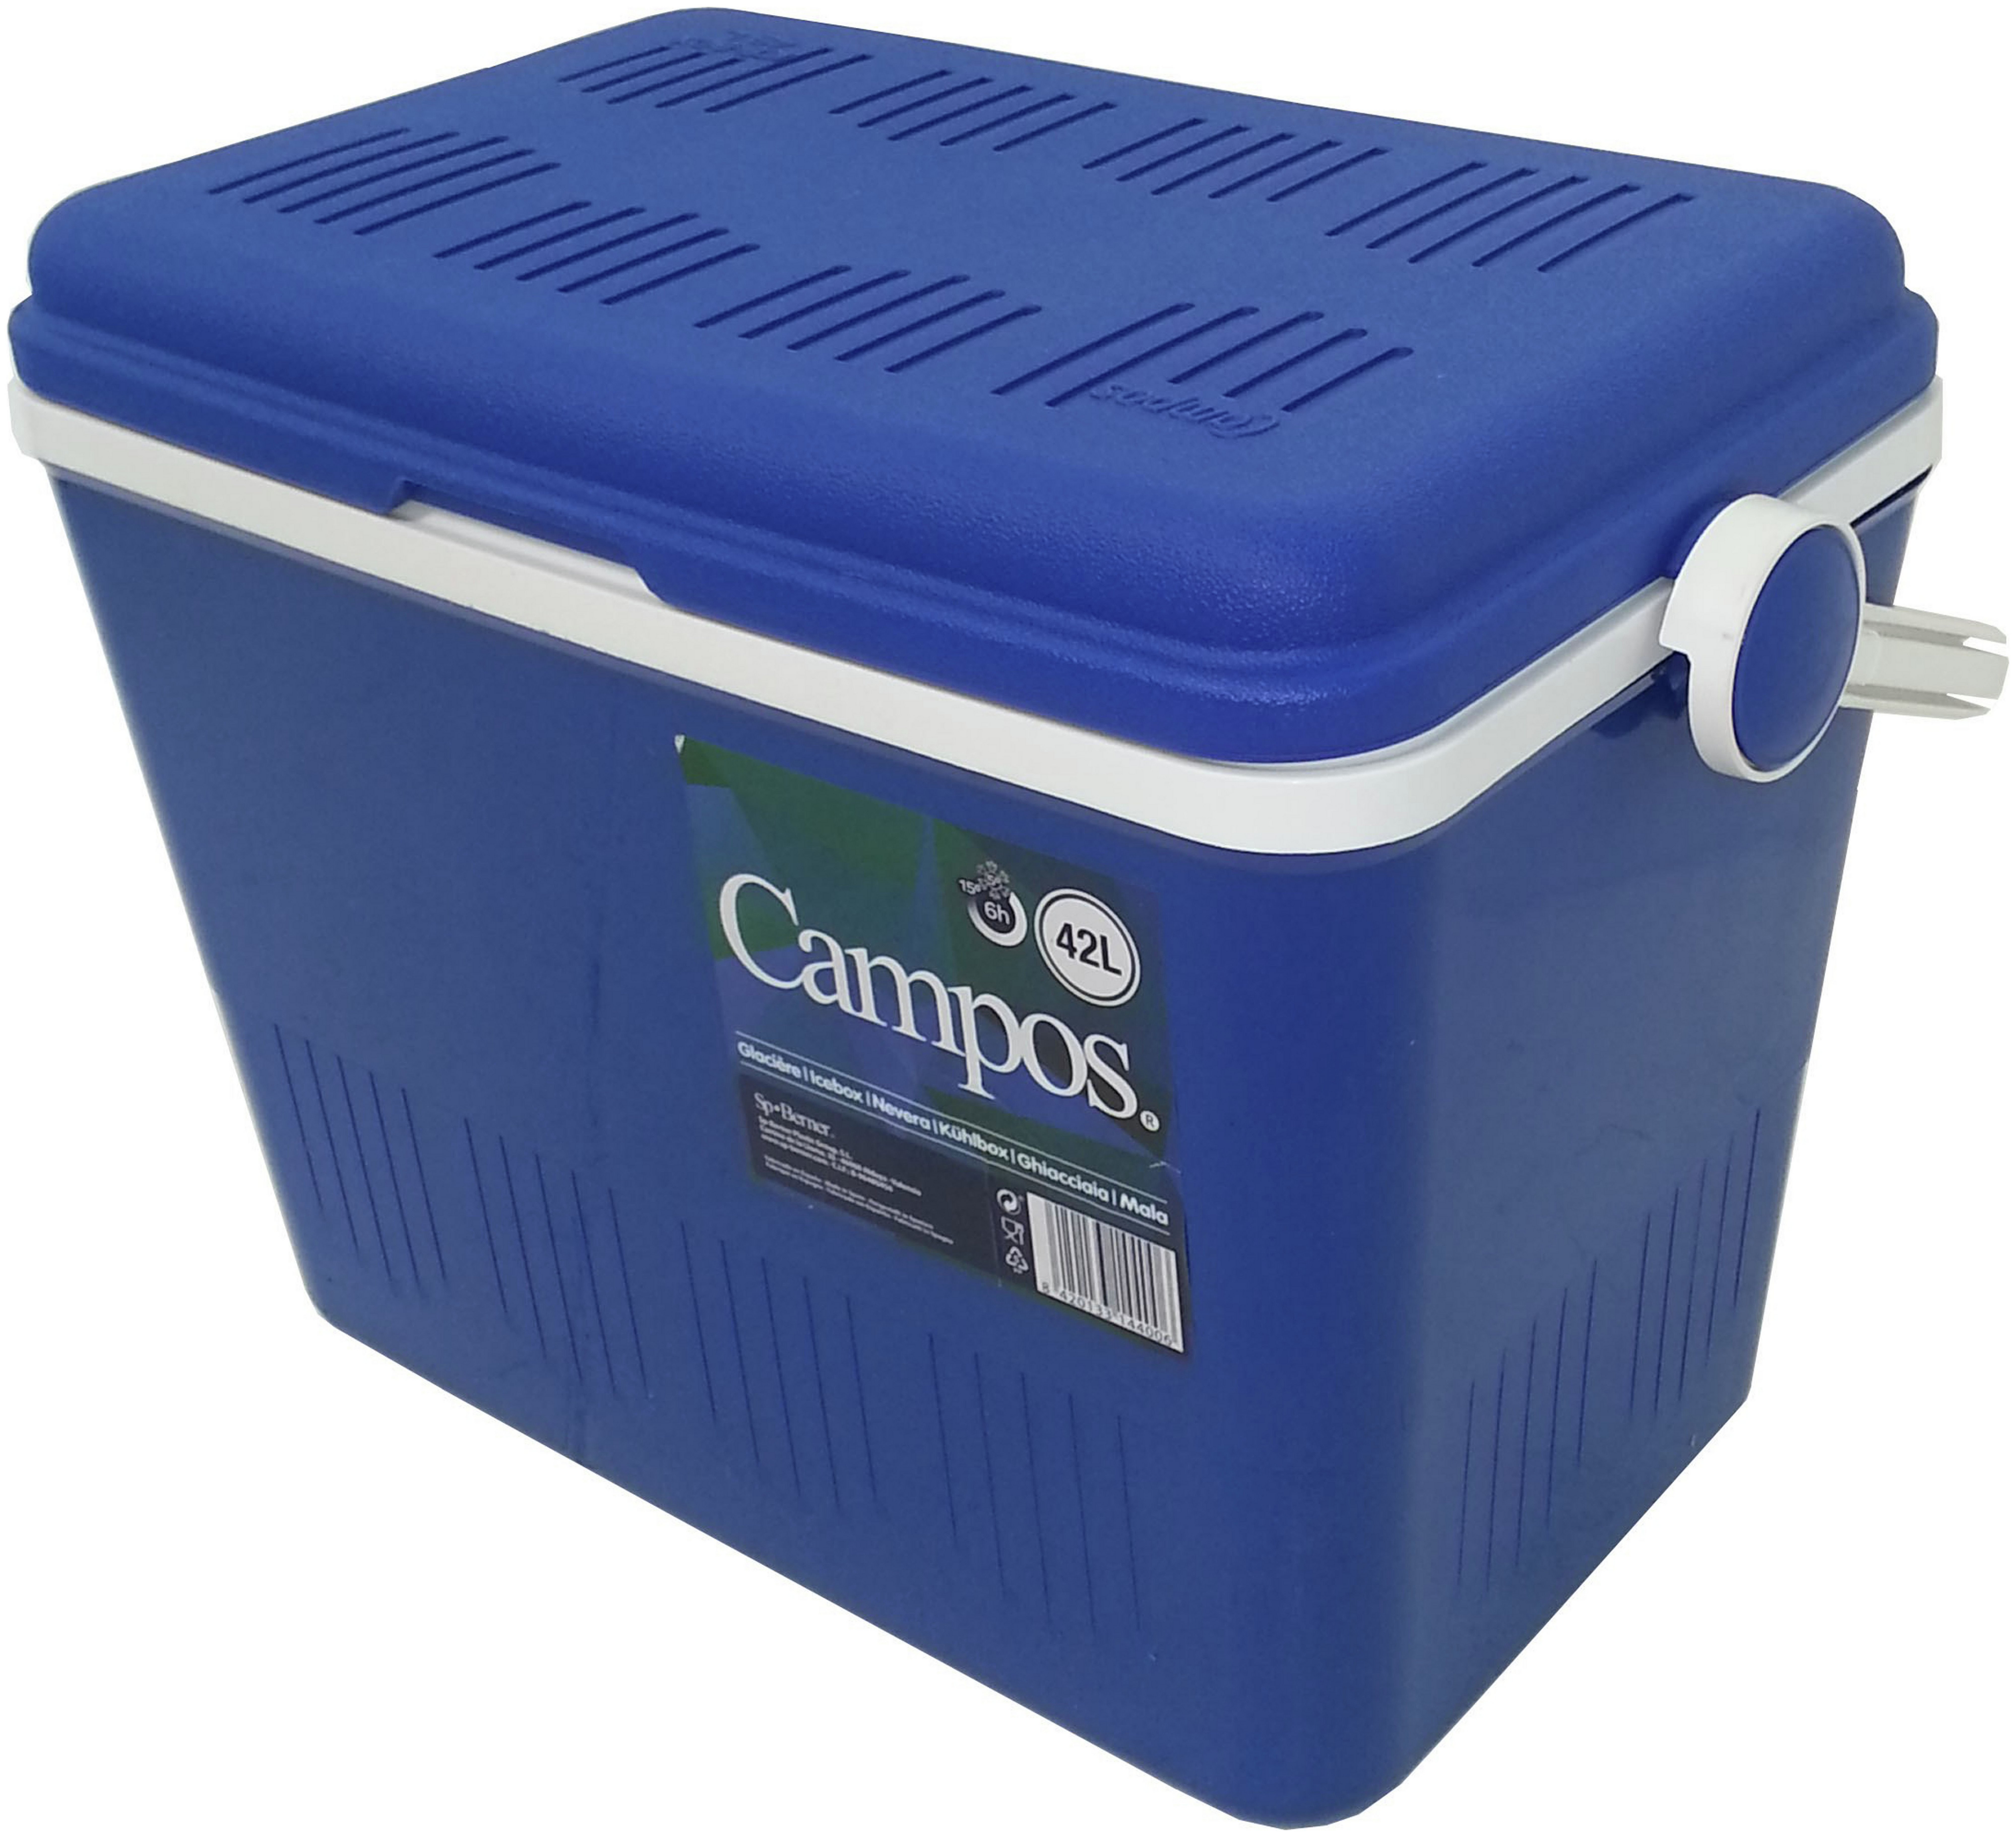 Cool Box buy large coolbox - 42l at argos.co.uk - your online shop for cool